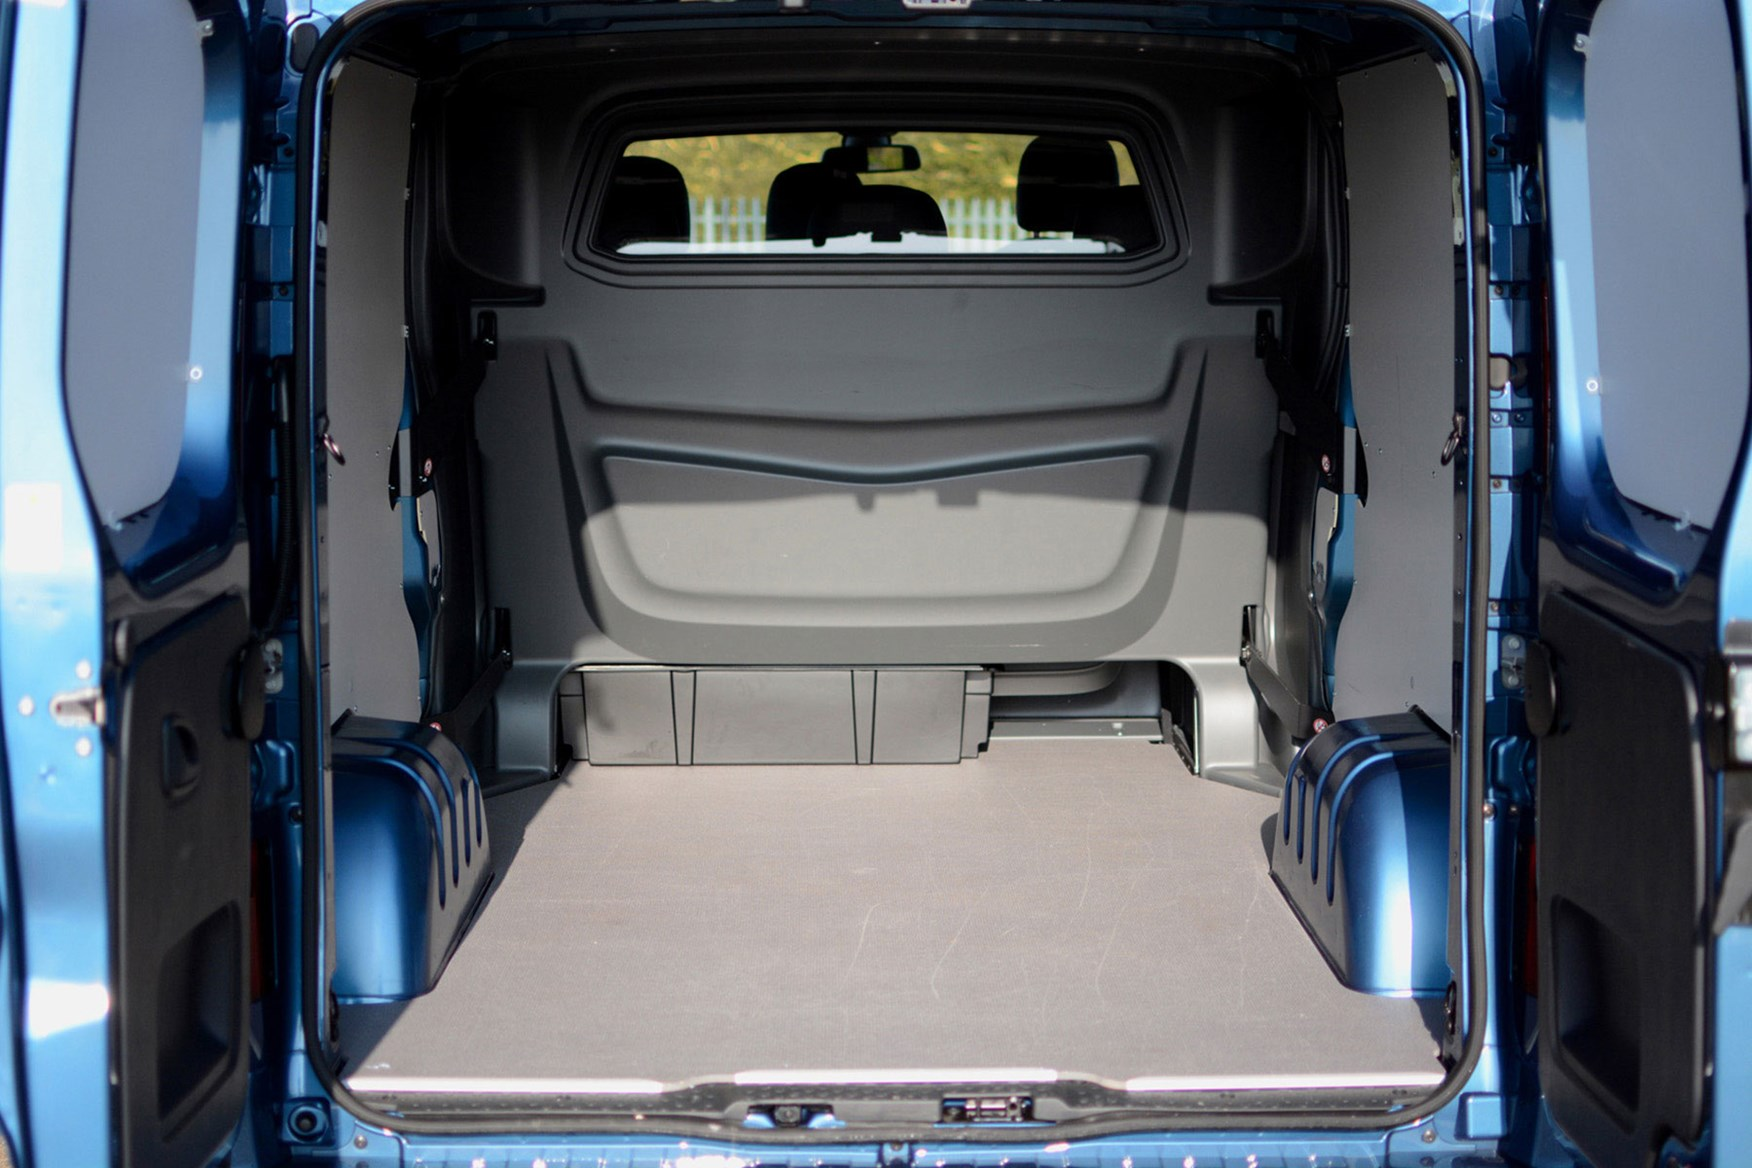 Vauxhall Vivaro Doublecab Sportive review - load area